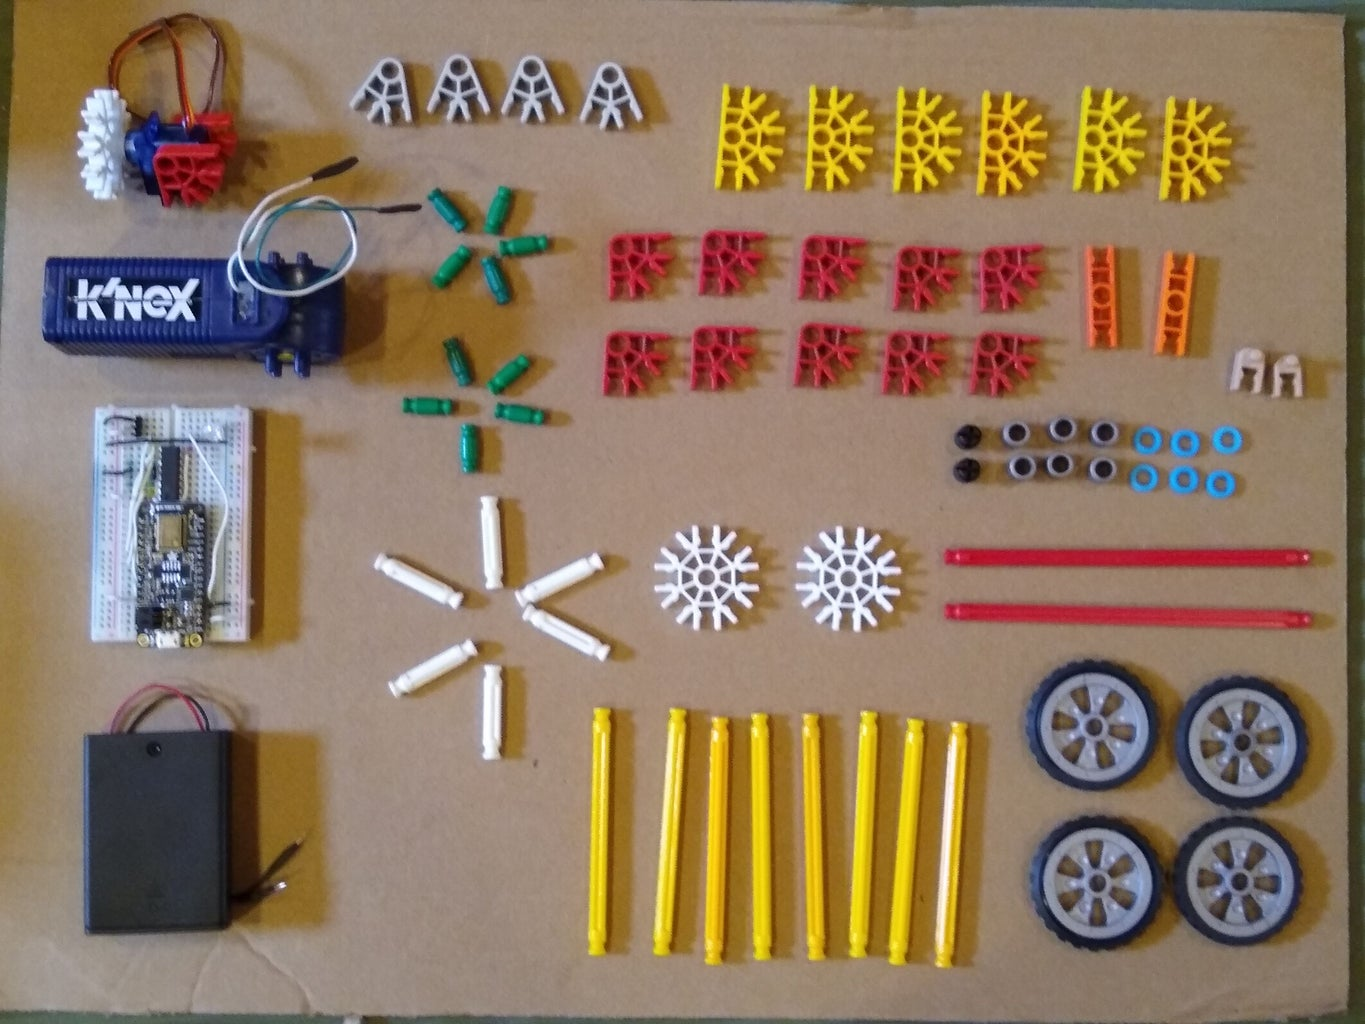 Parts Needed for the Bobble Car